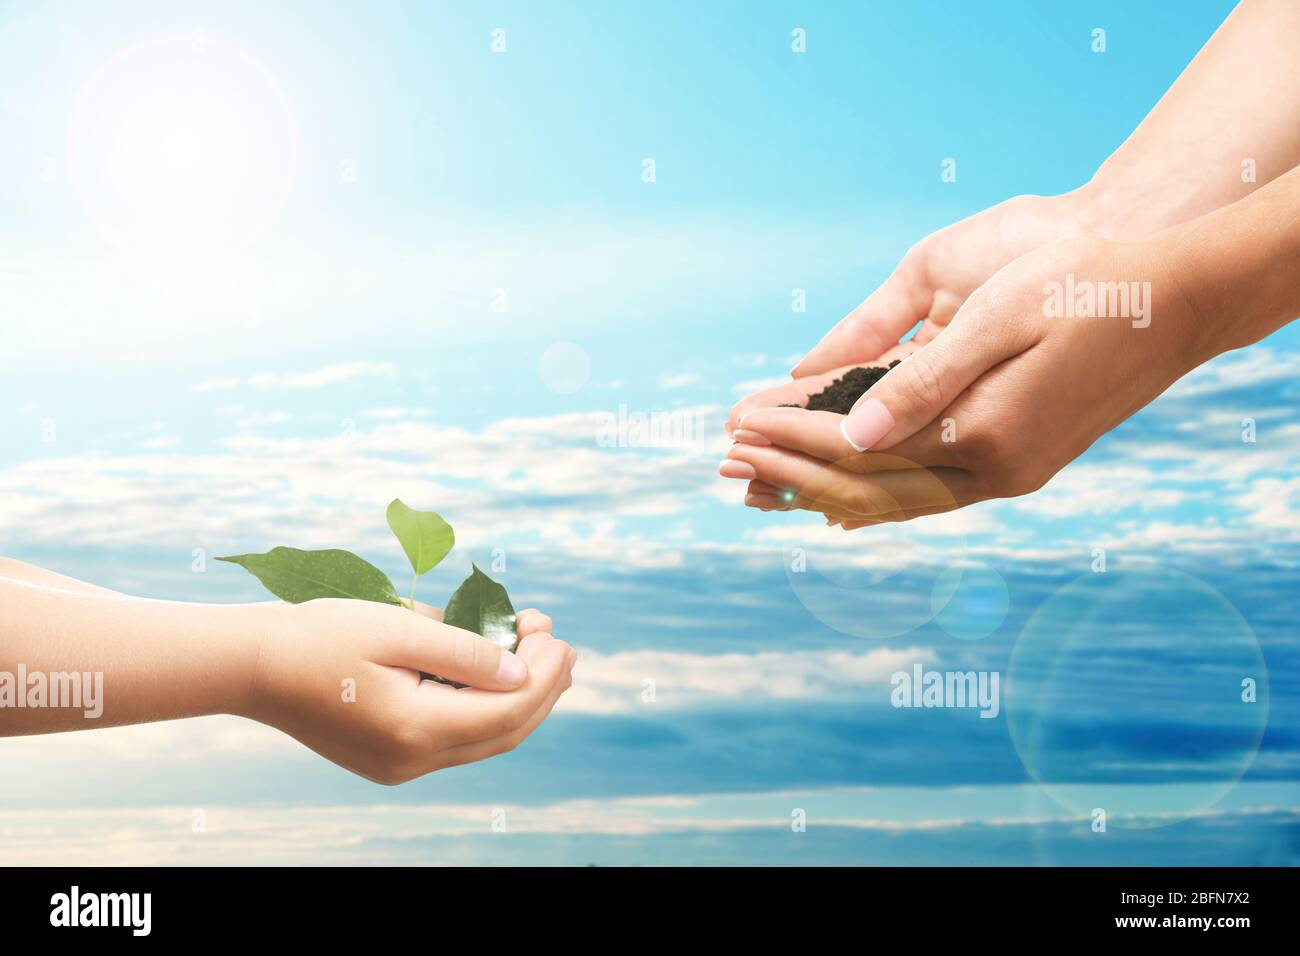 Mother and child hands with soil and seedling on sky background. Help and care concept. Stock Photo